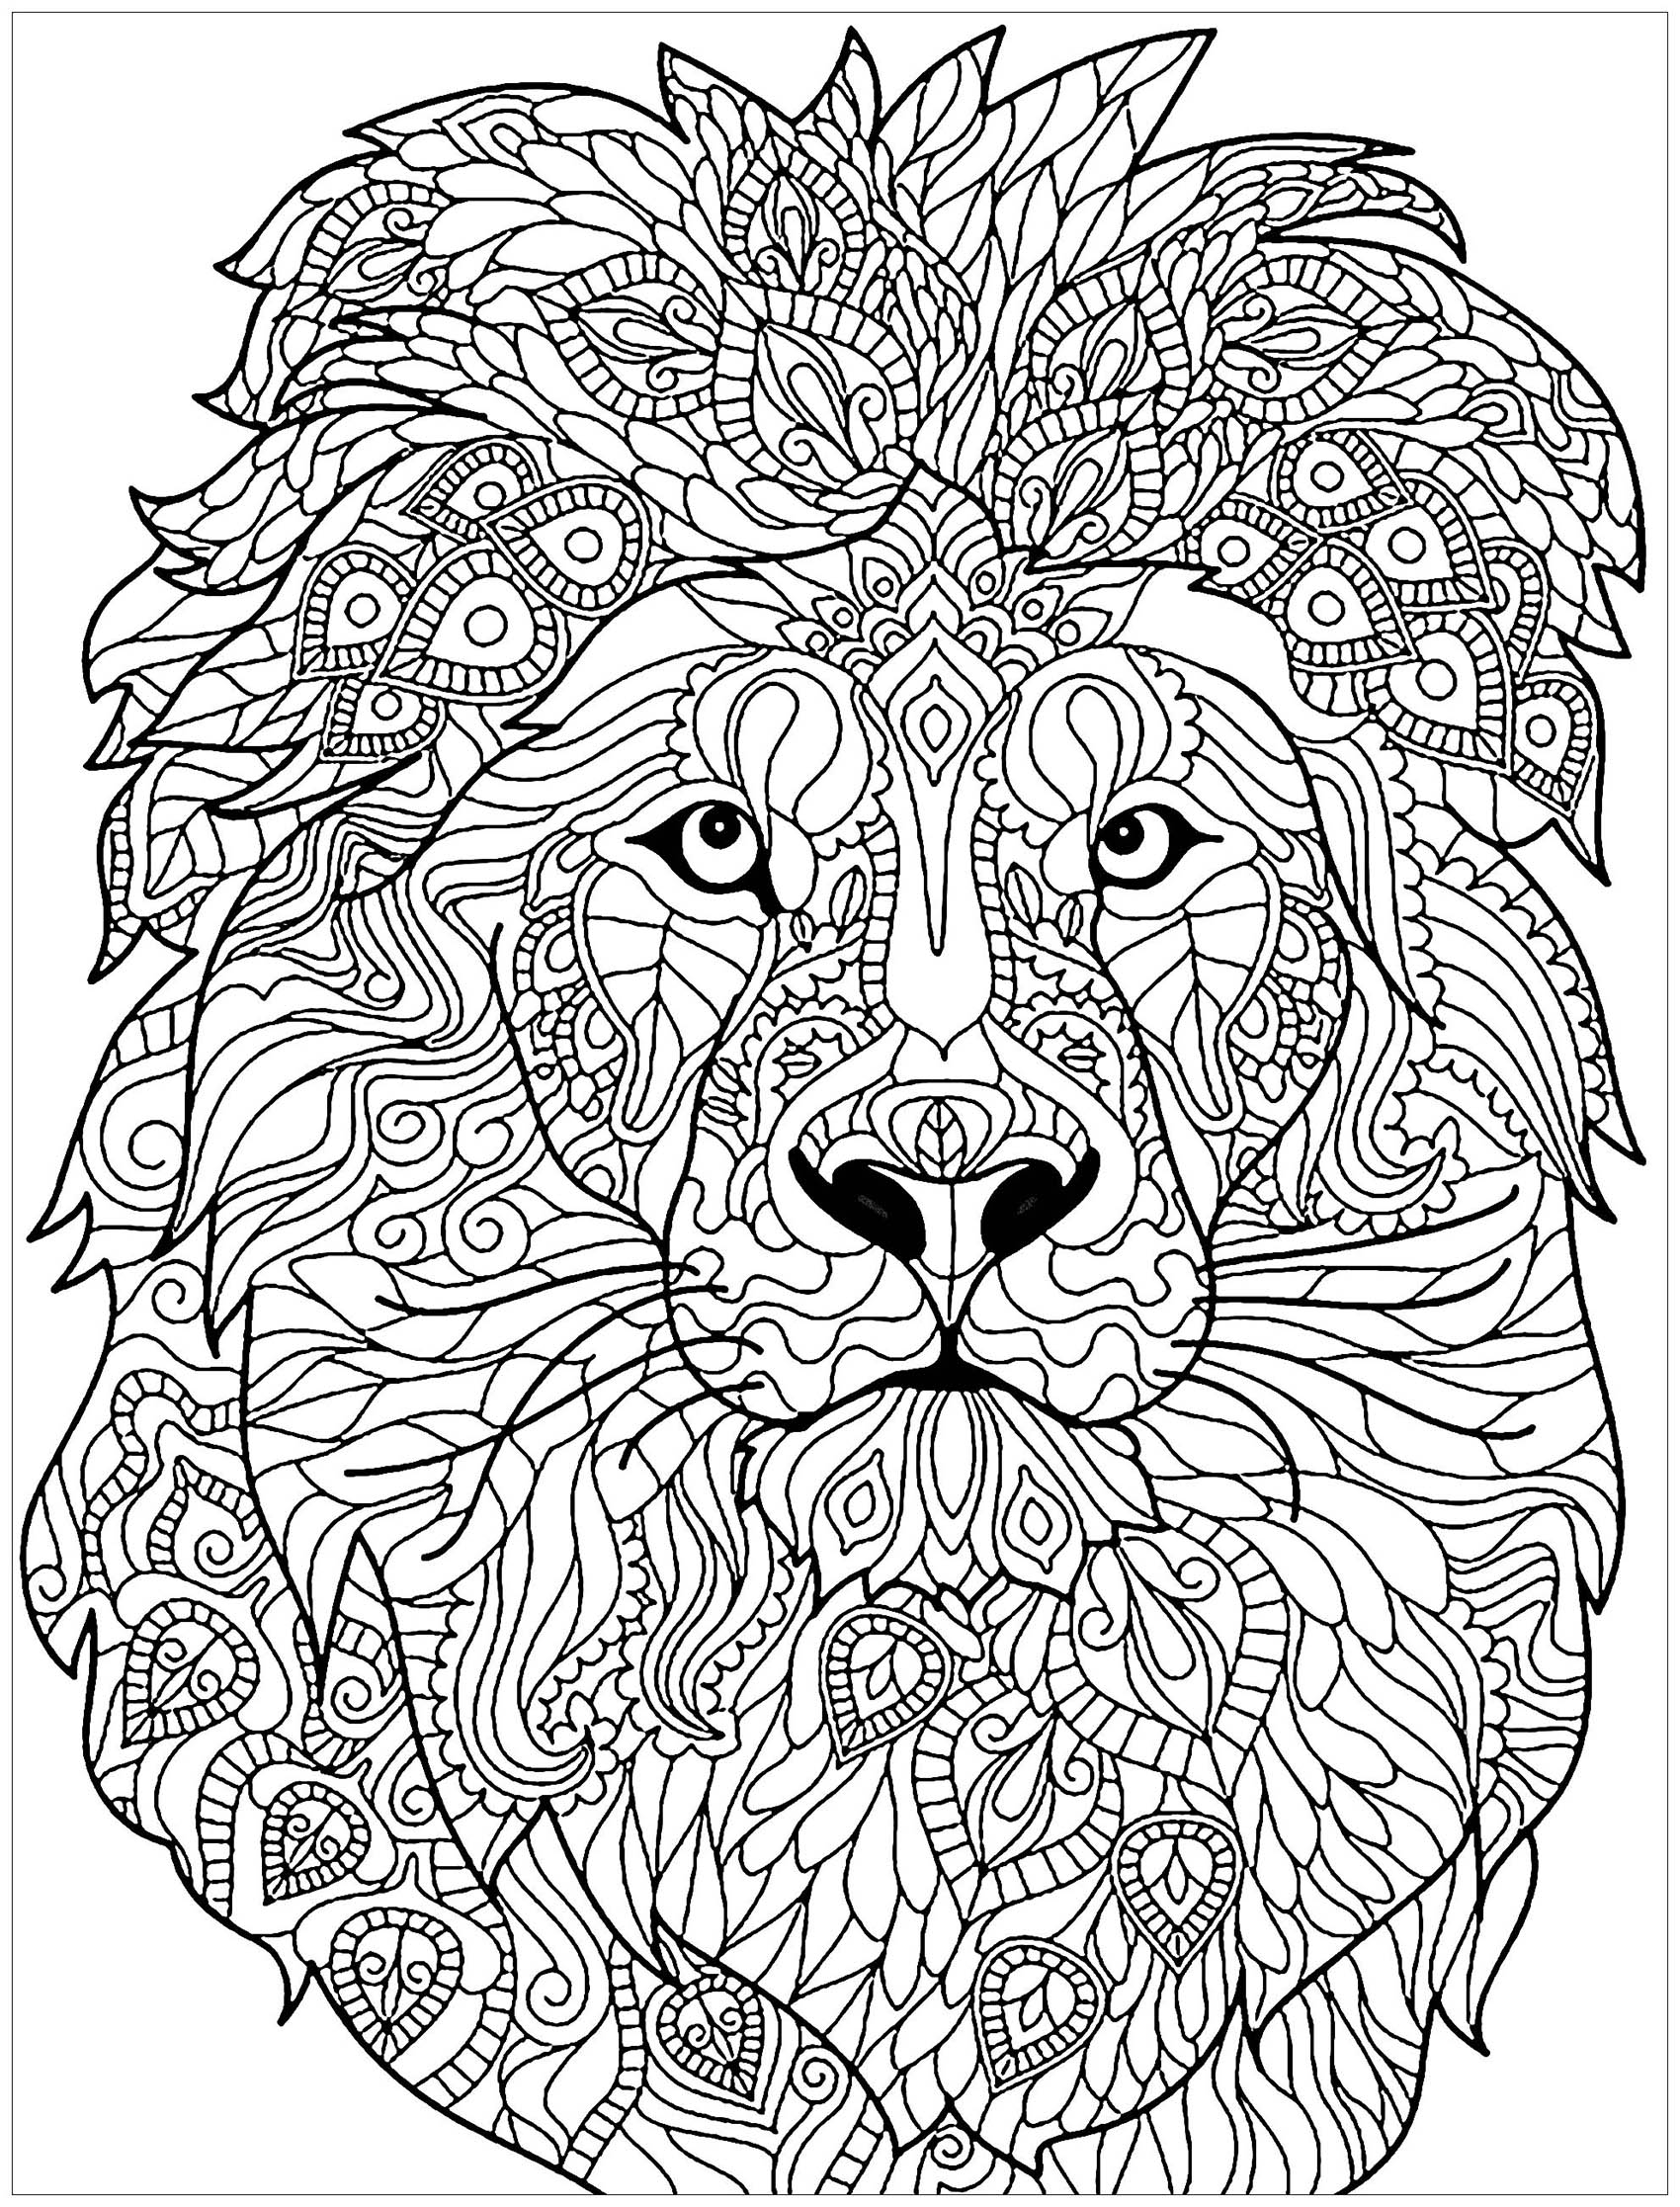 colouring images of lion coloring ville images of lion colouring